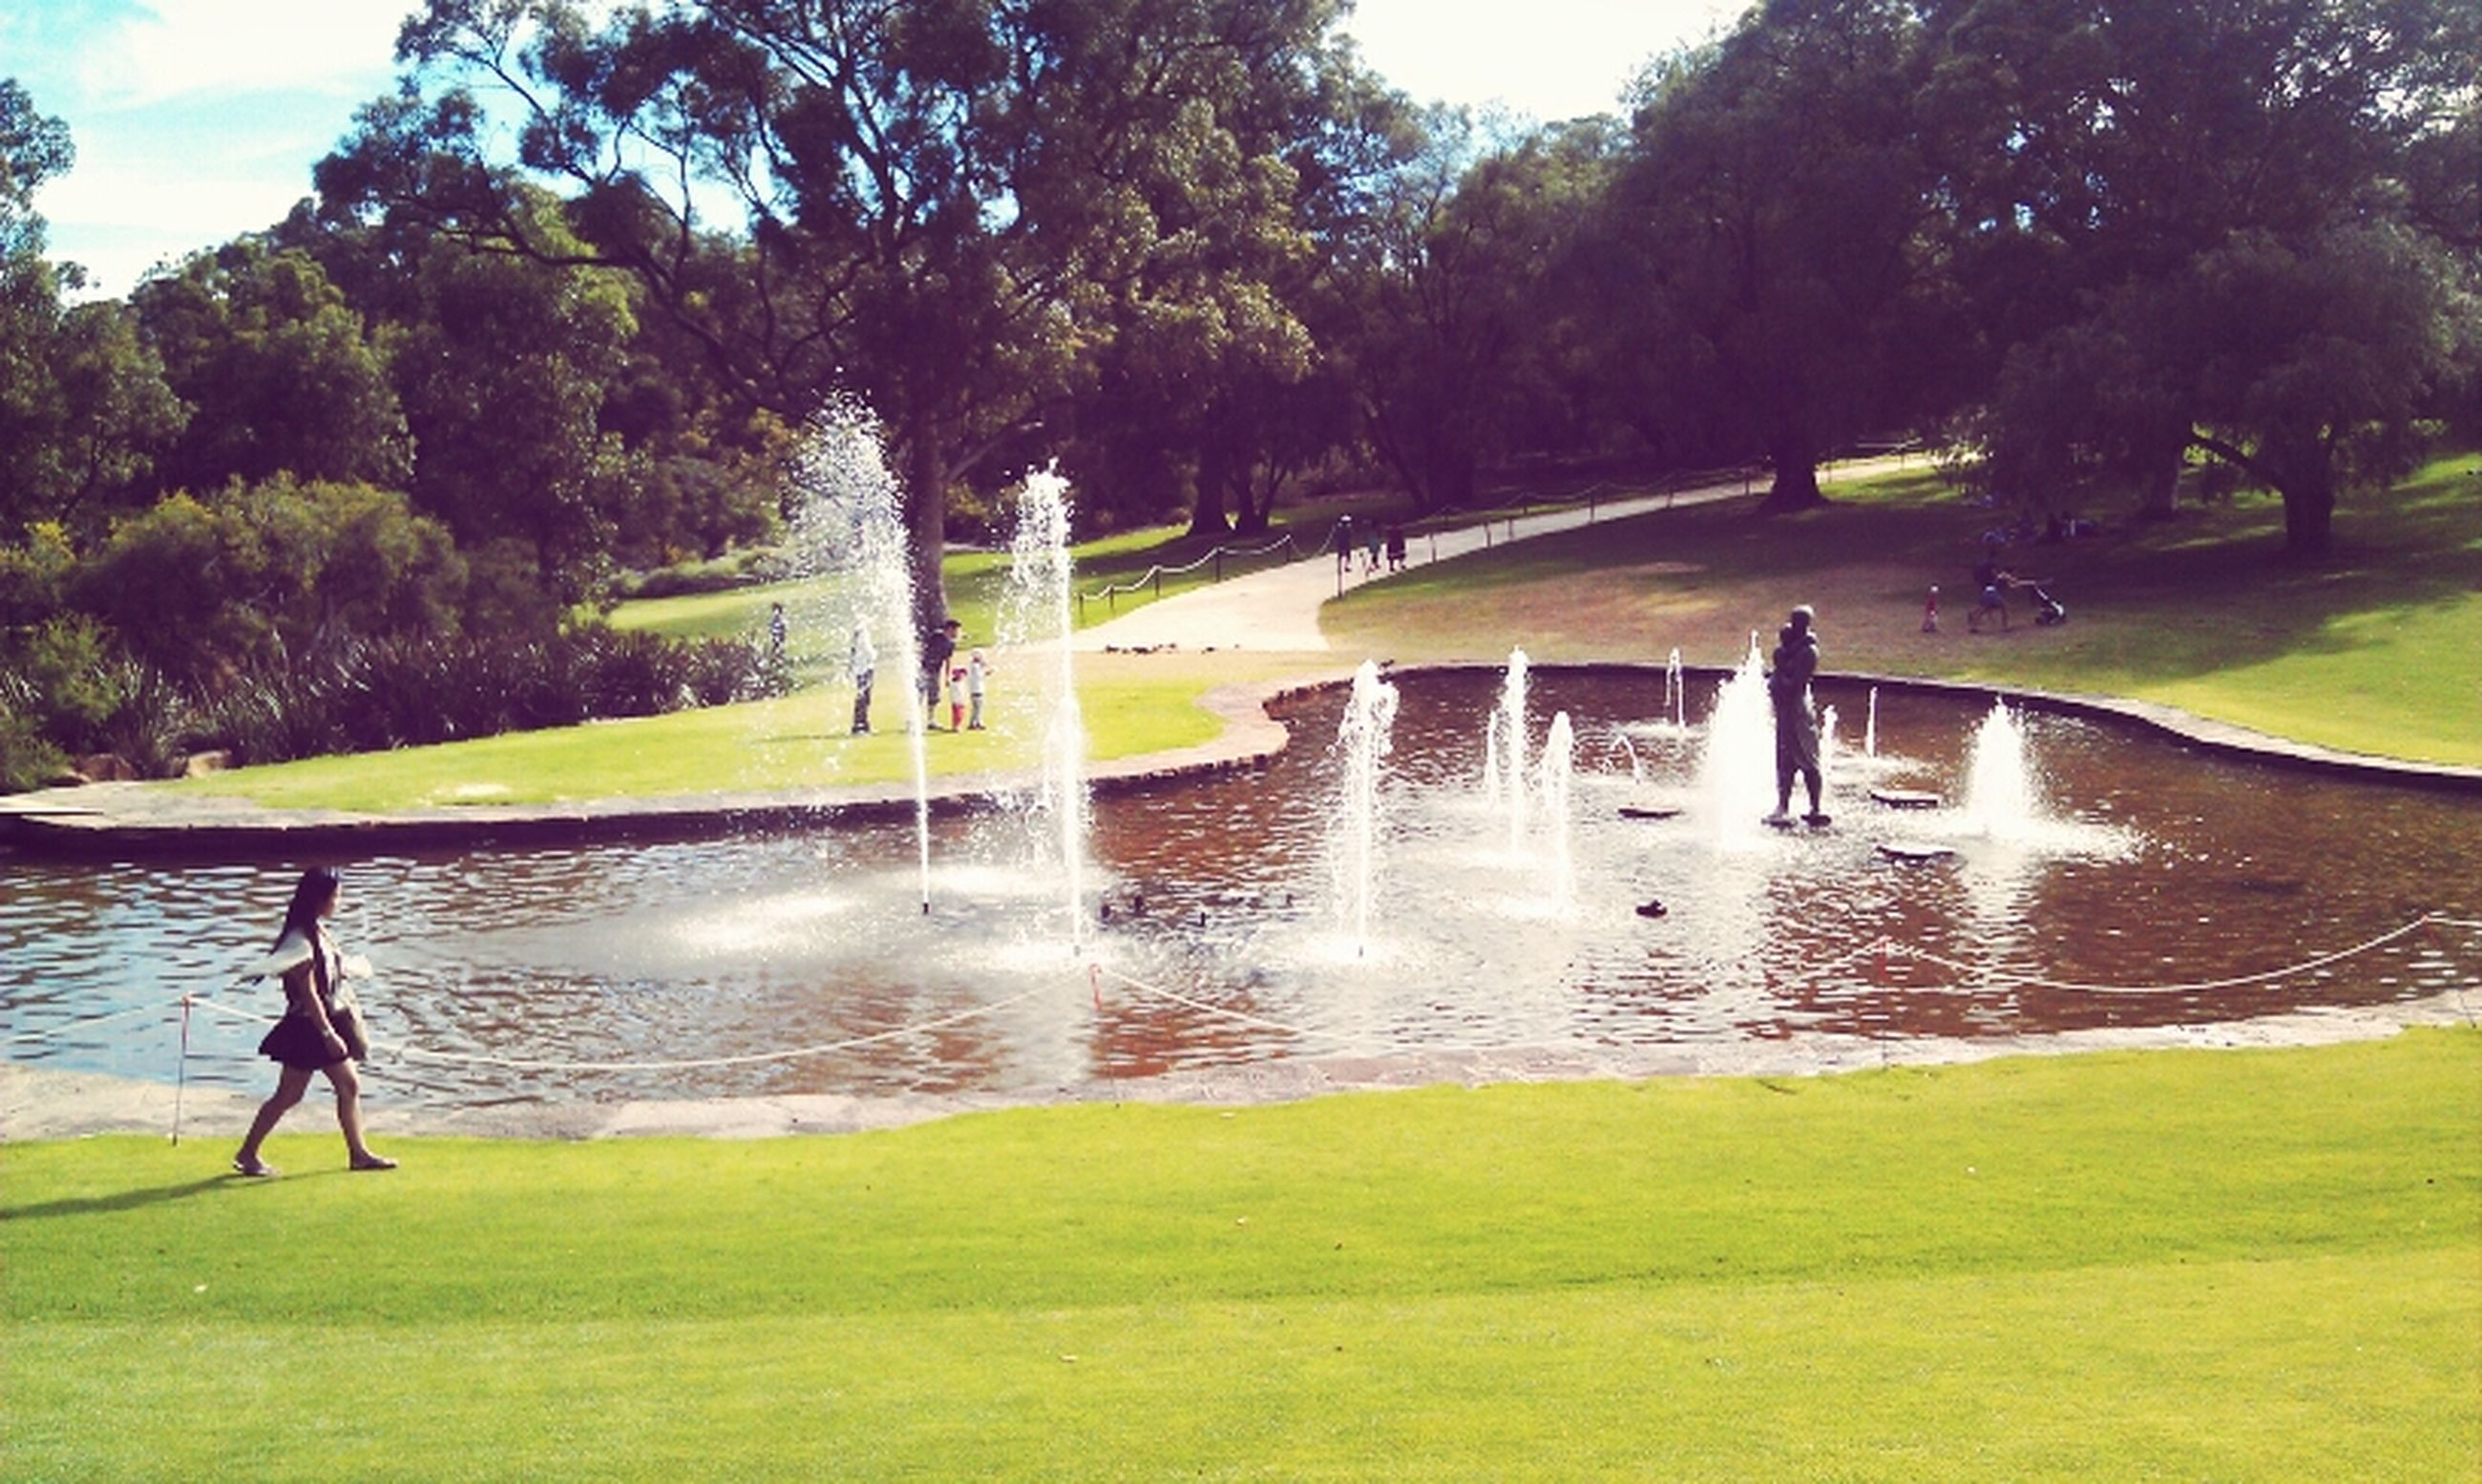 water, grass, tree, green color, fountain, motion, spraying, park - man made space, nature, reflection, beauty in nature, pond, splashing, growth, tranquility, sunlight, scenics, tranquil scene, day